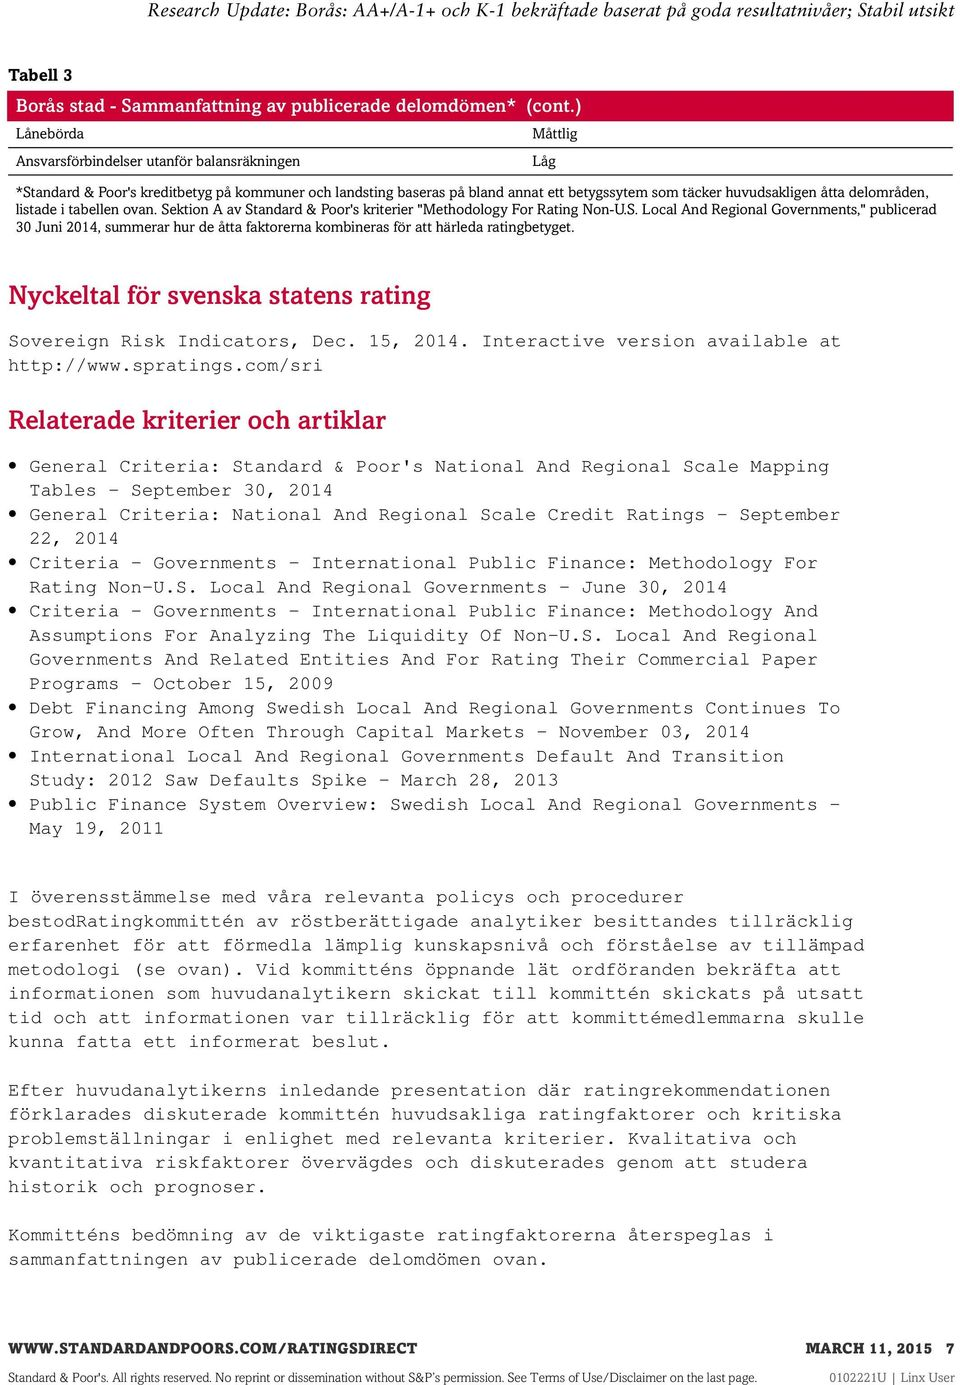 "listade i tabellen ovan. Sektion A av Standard & Poor's kriterier ""Methodology For Rating Non-U.S. Local And Regional Governments,"" publicerad 30 Juni 2014, summerar hur de åtta faktorerna kombineras för att härleda ratingbetyget."